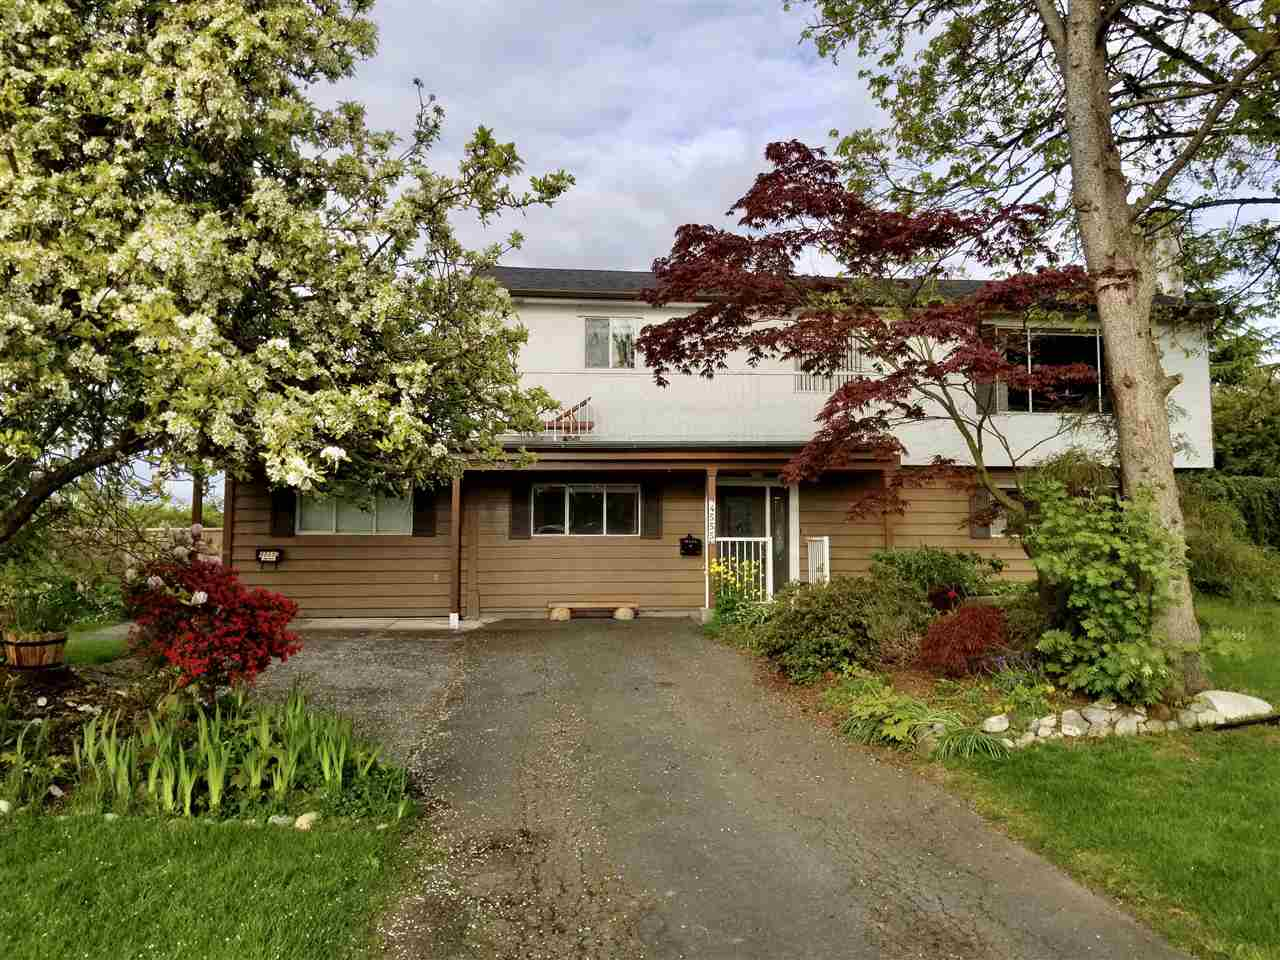 Main Photo: 4555 EDMONDS Drive in Delta: Port Guichon House for sale (Ladner)  : MLS(r) # R2150154